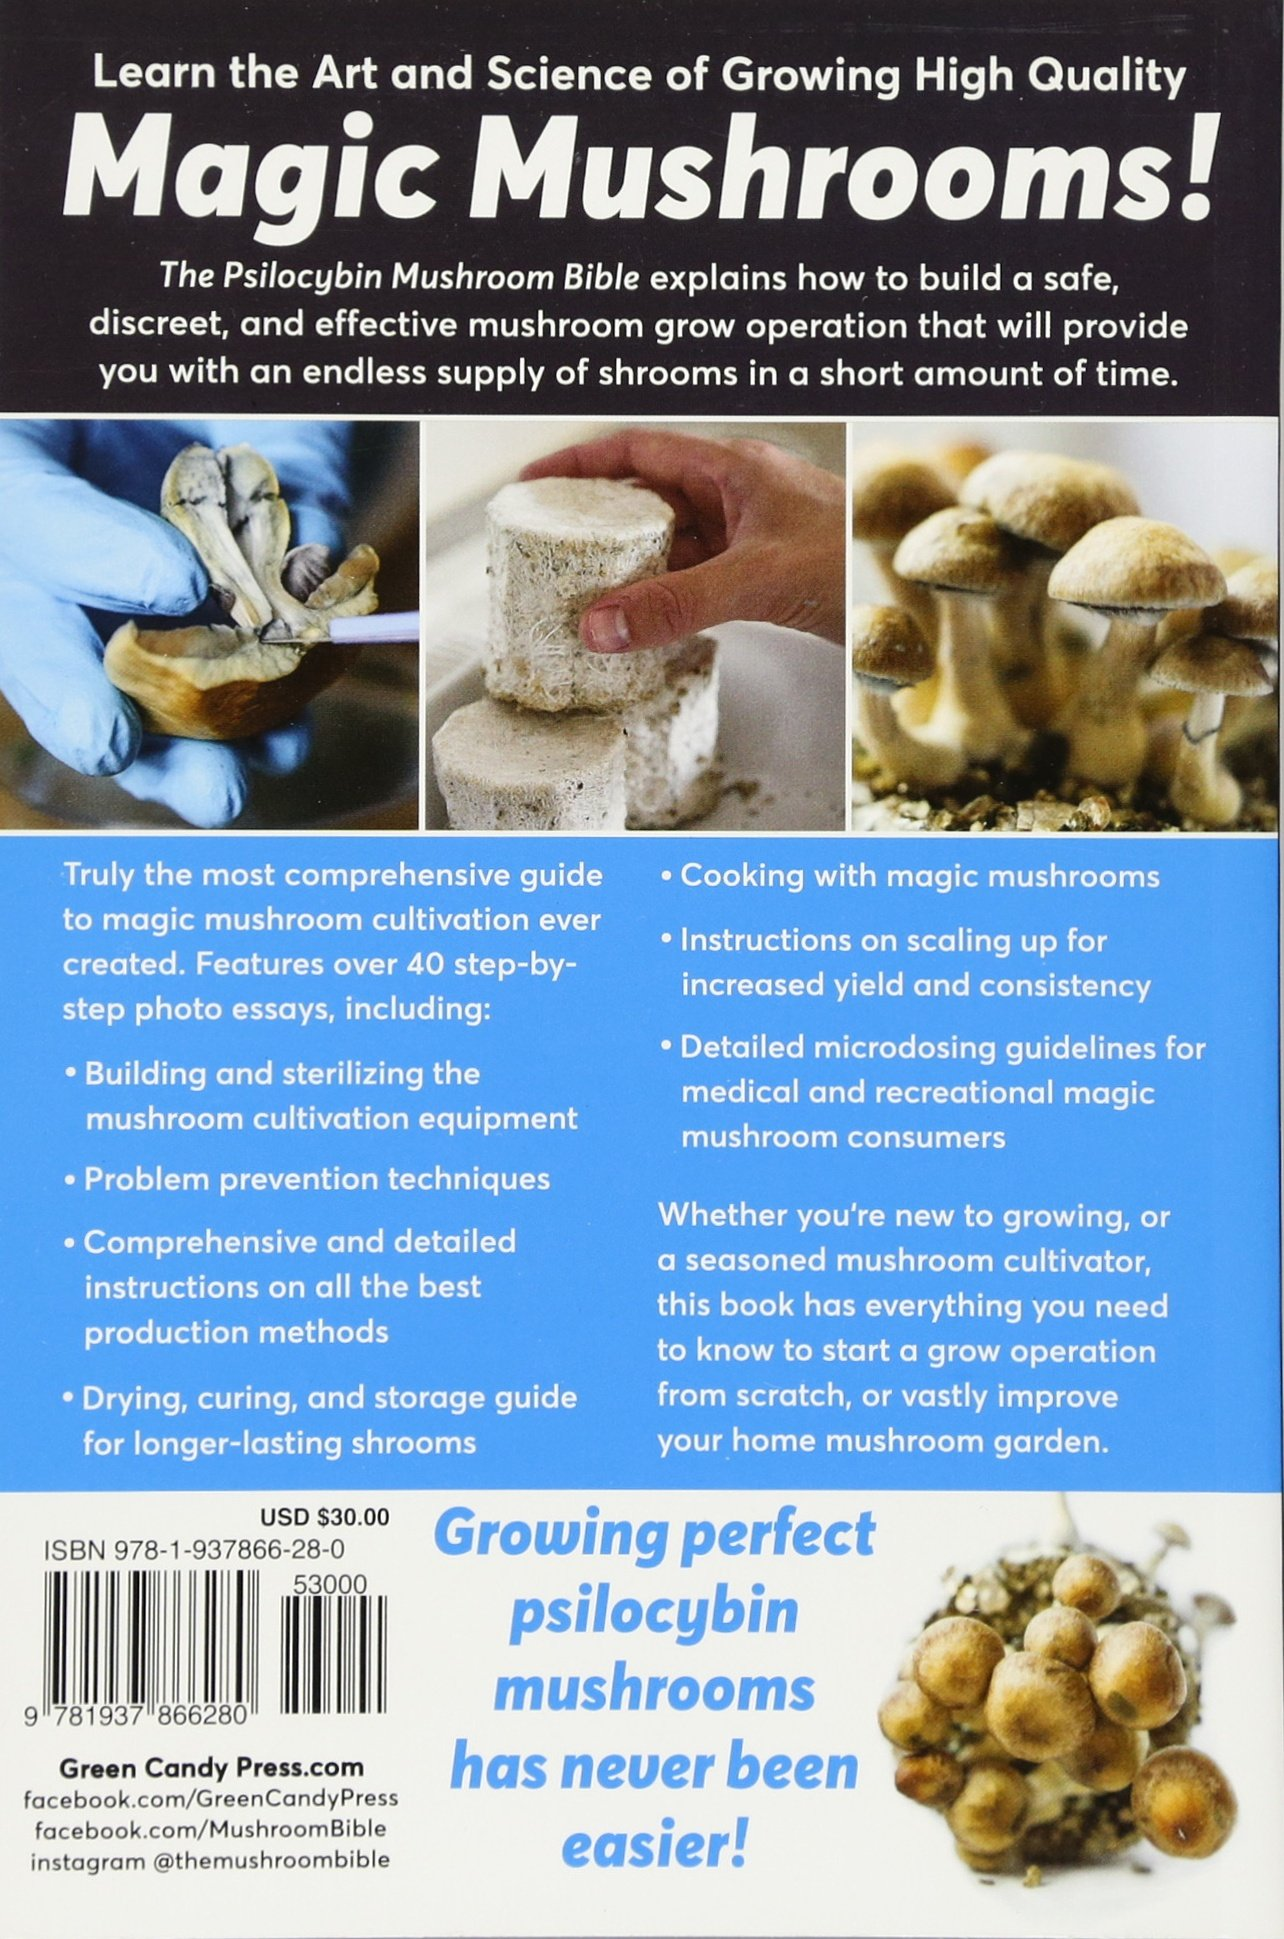 The Psilocybin Mushroom Bible: The Definitive Guide to Growing and